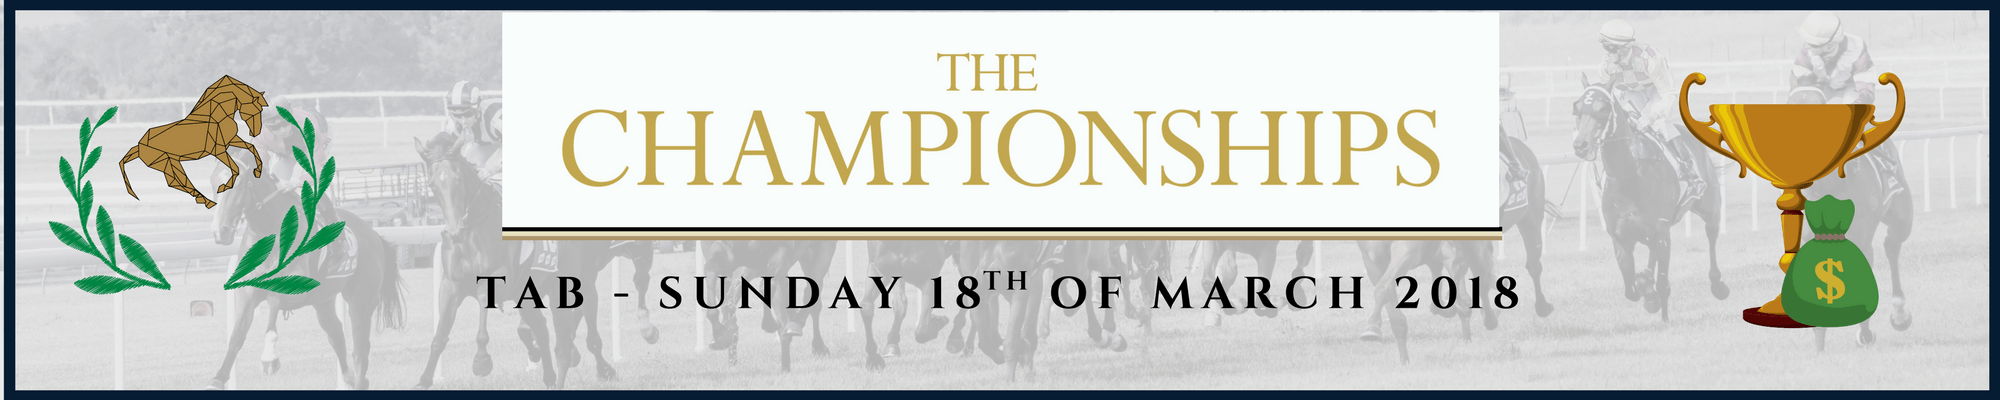 The championships